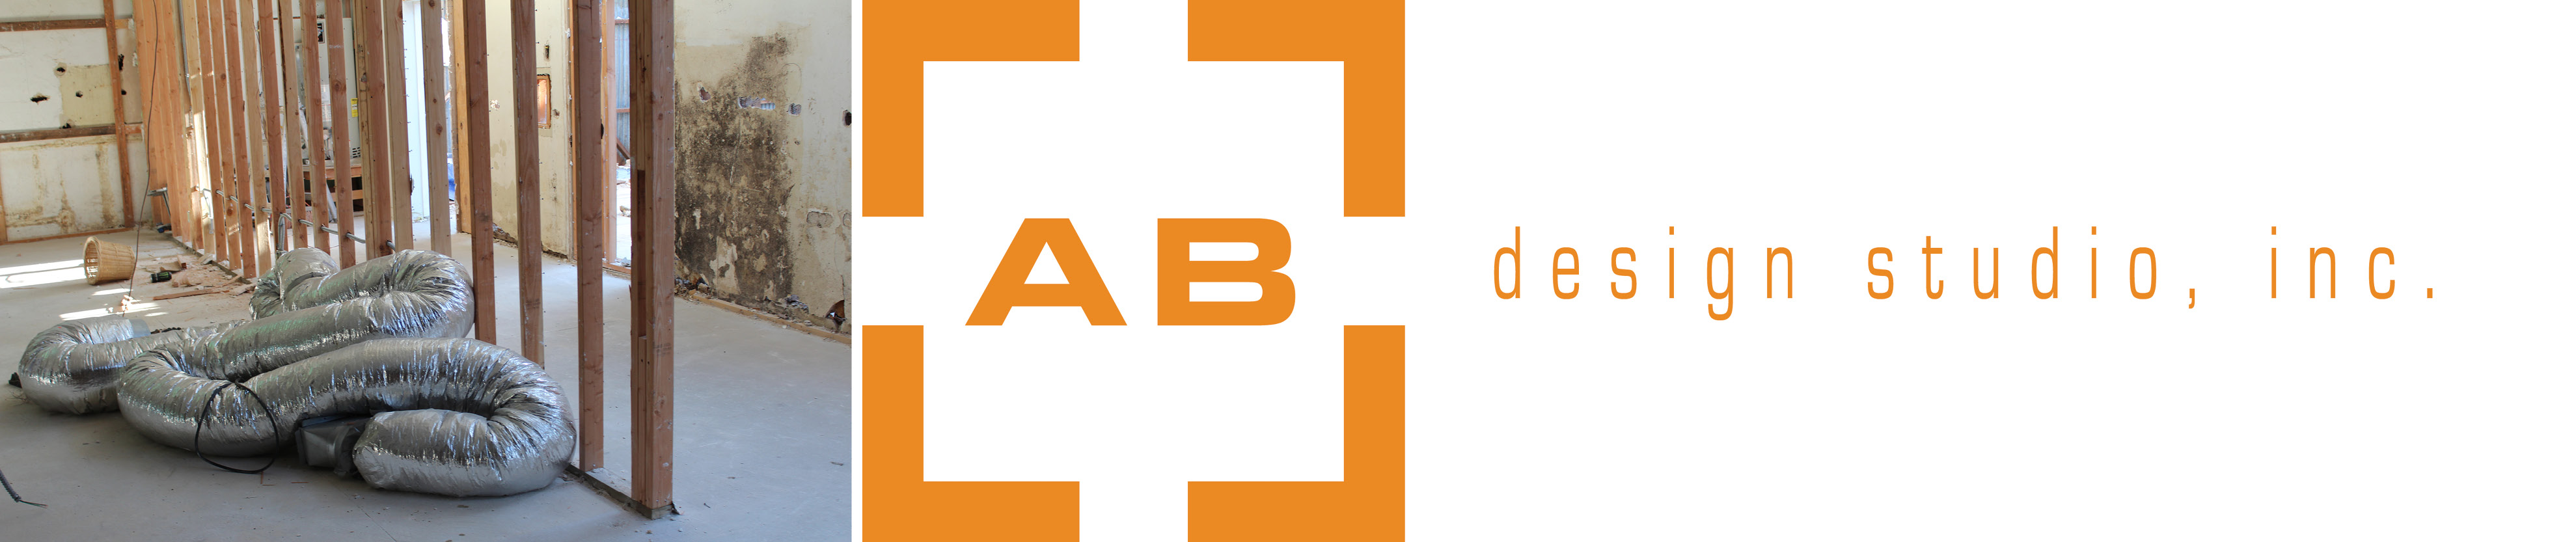 AB design studio relocates